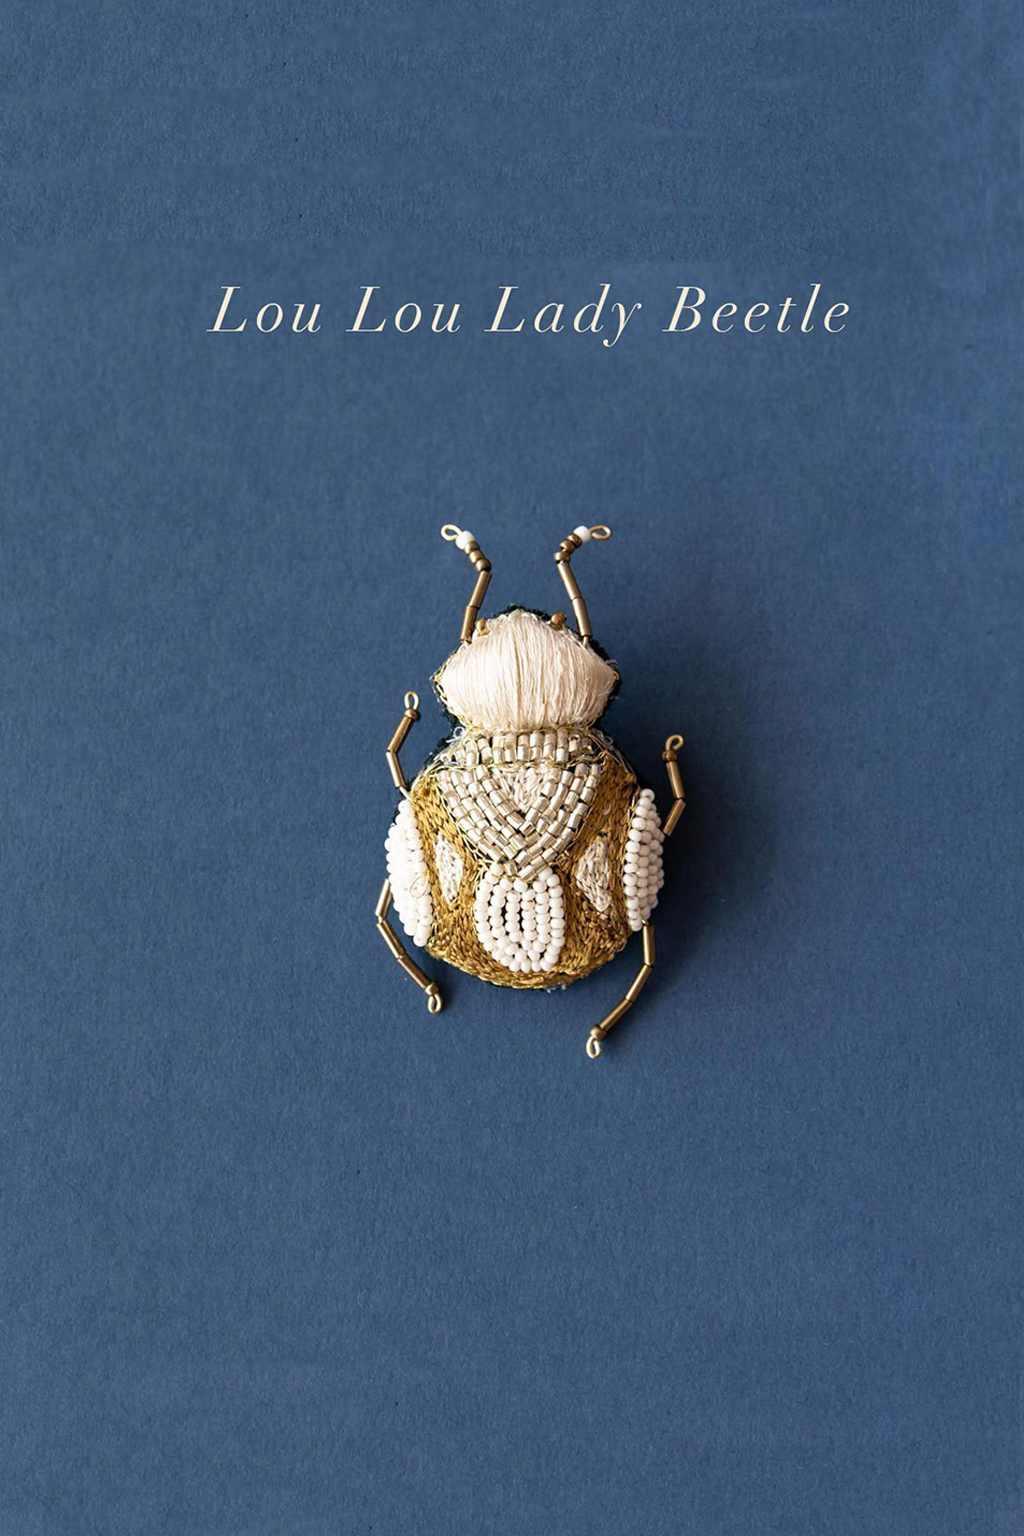 Ruby Olive-Delicate Brooch - Lou Lou Lady Beetle-Mott and Mulberry